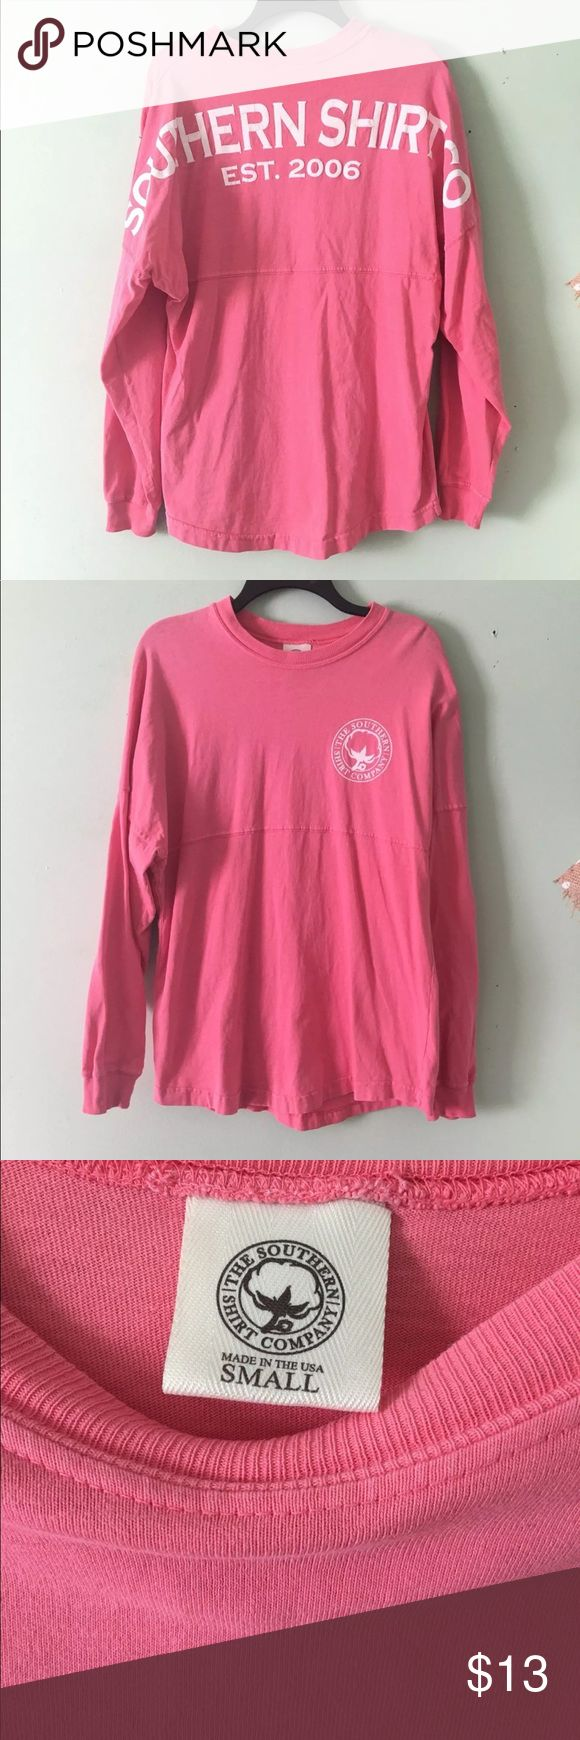 Women's Preppy Southern Shirt Company T-Shirt S Southern Shirt Company Preppy Pink Long Sleeve T-Shirt. There is a hole in the armpit, that can be sewn back since it is near the seam. No one sees your armpit anyway. Overall, in great condition.  **Actual Color May Be affected Due to Lighting**  Please check out my other Western/Cowboy/Cowgirl/and other clothing items I have listed.  Tags: Simply Southern, Southern Tide, Southern Fried Cotton, Southern Marsh, Southern Shirt Company, Vineyard…